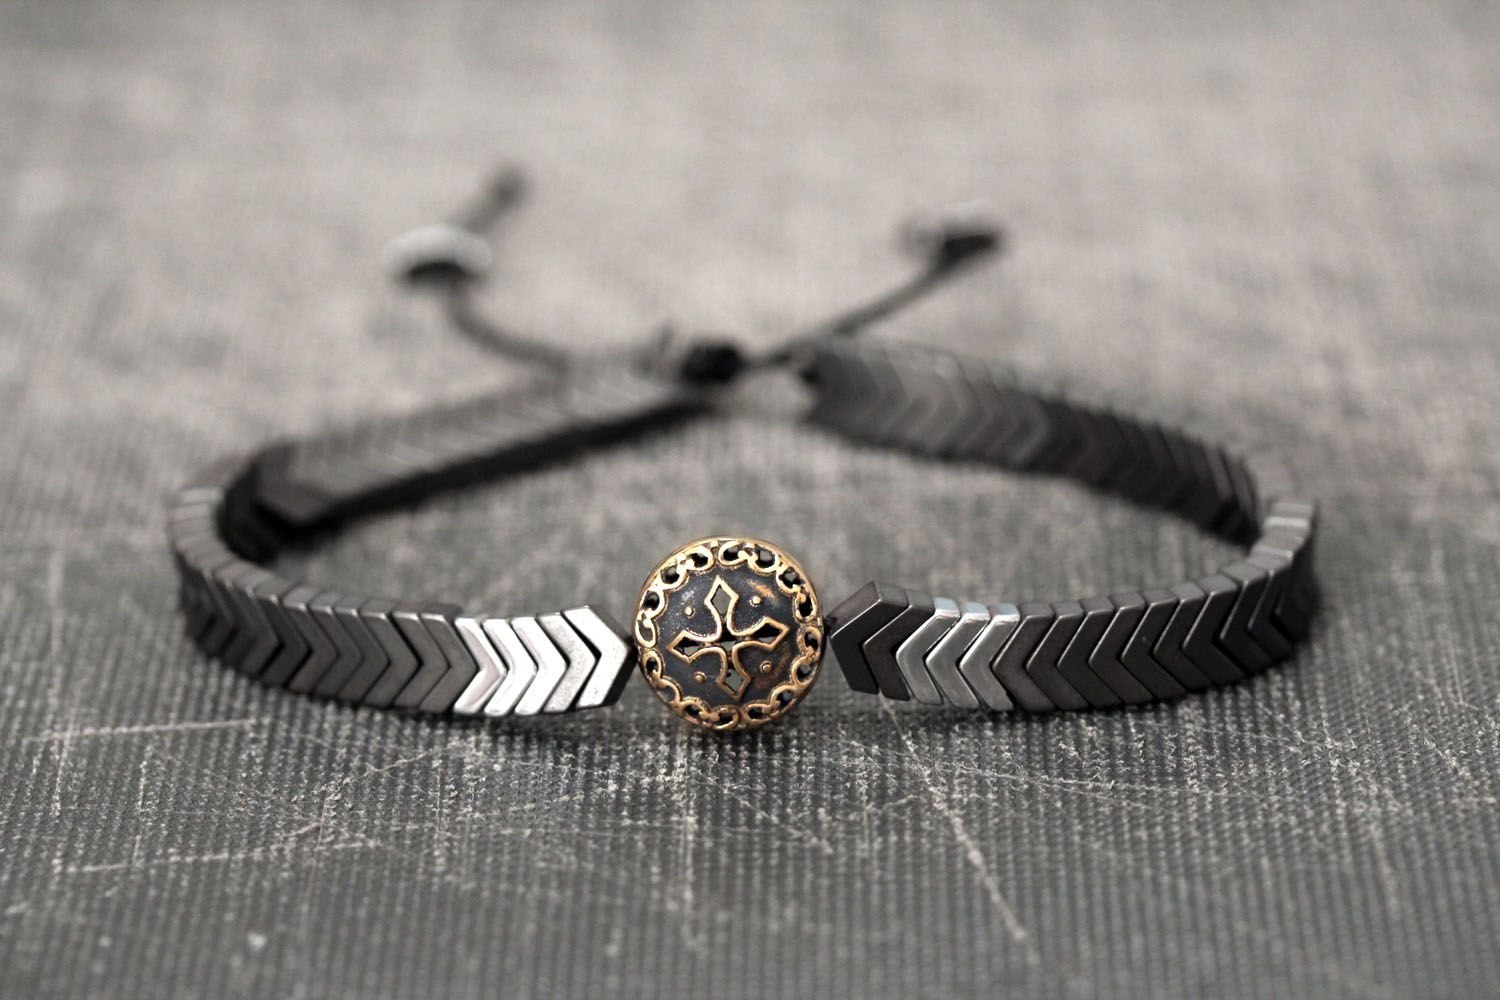 arrow matte jewelry gray for pin bracelet shiny men beads dark hematite head viking guys this features masculine finish